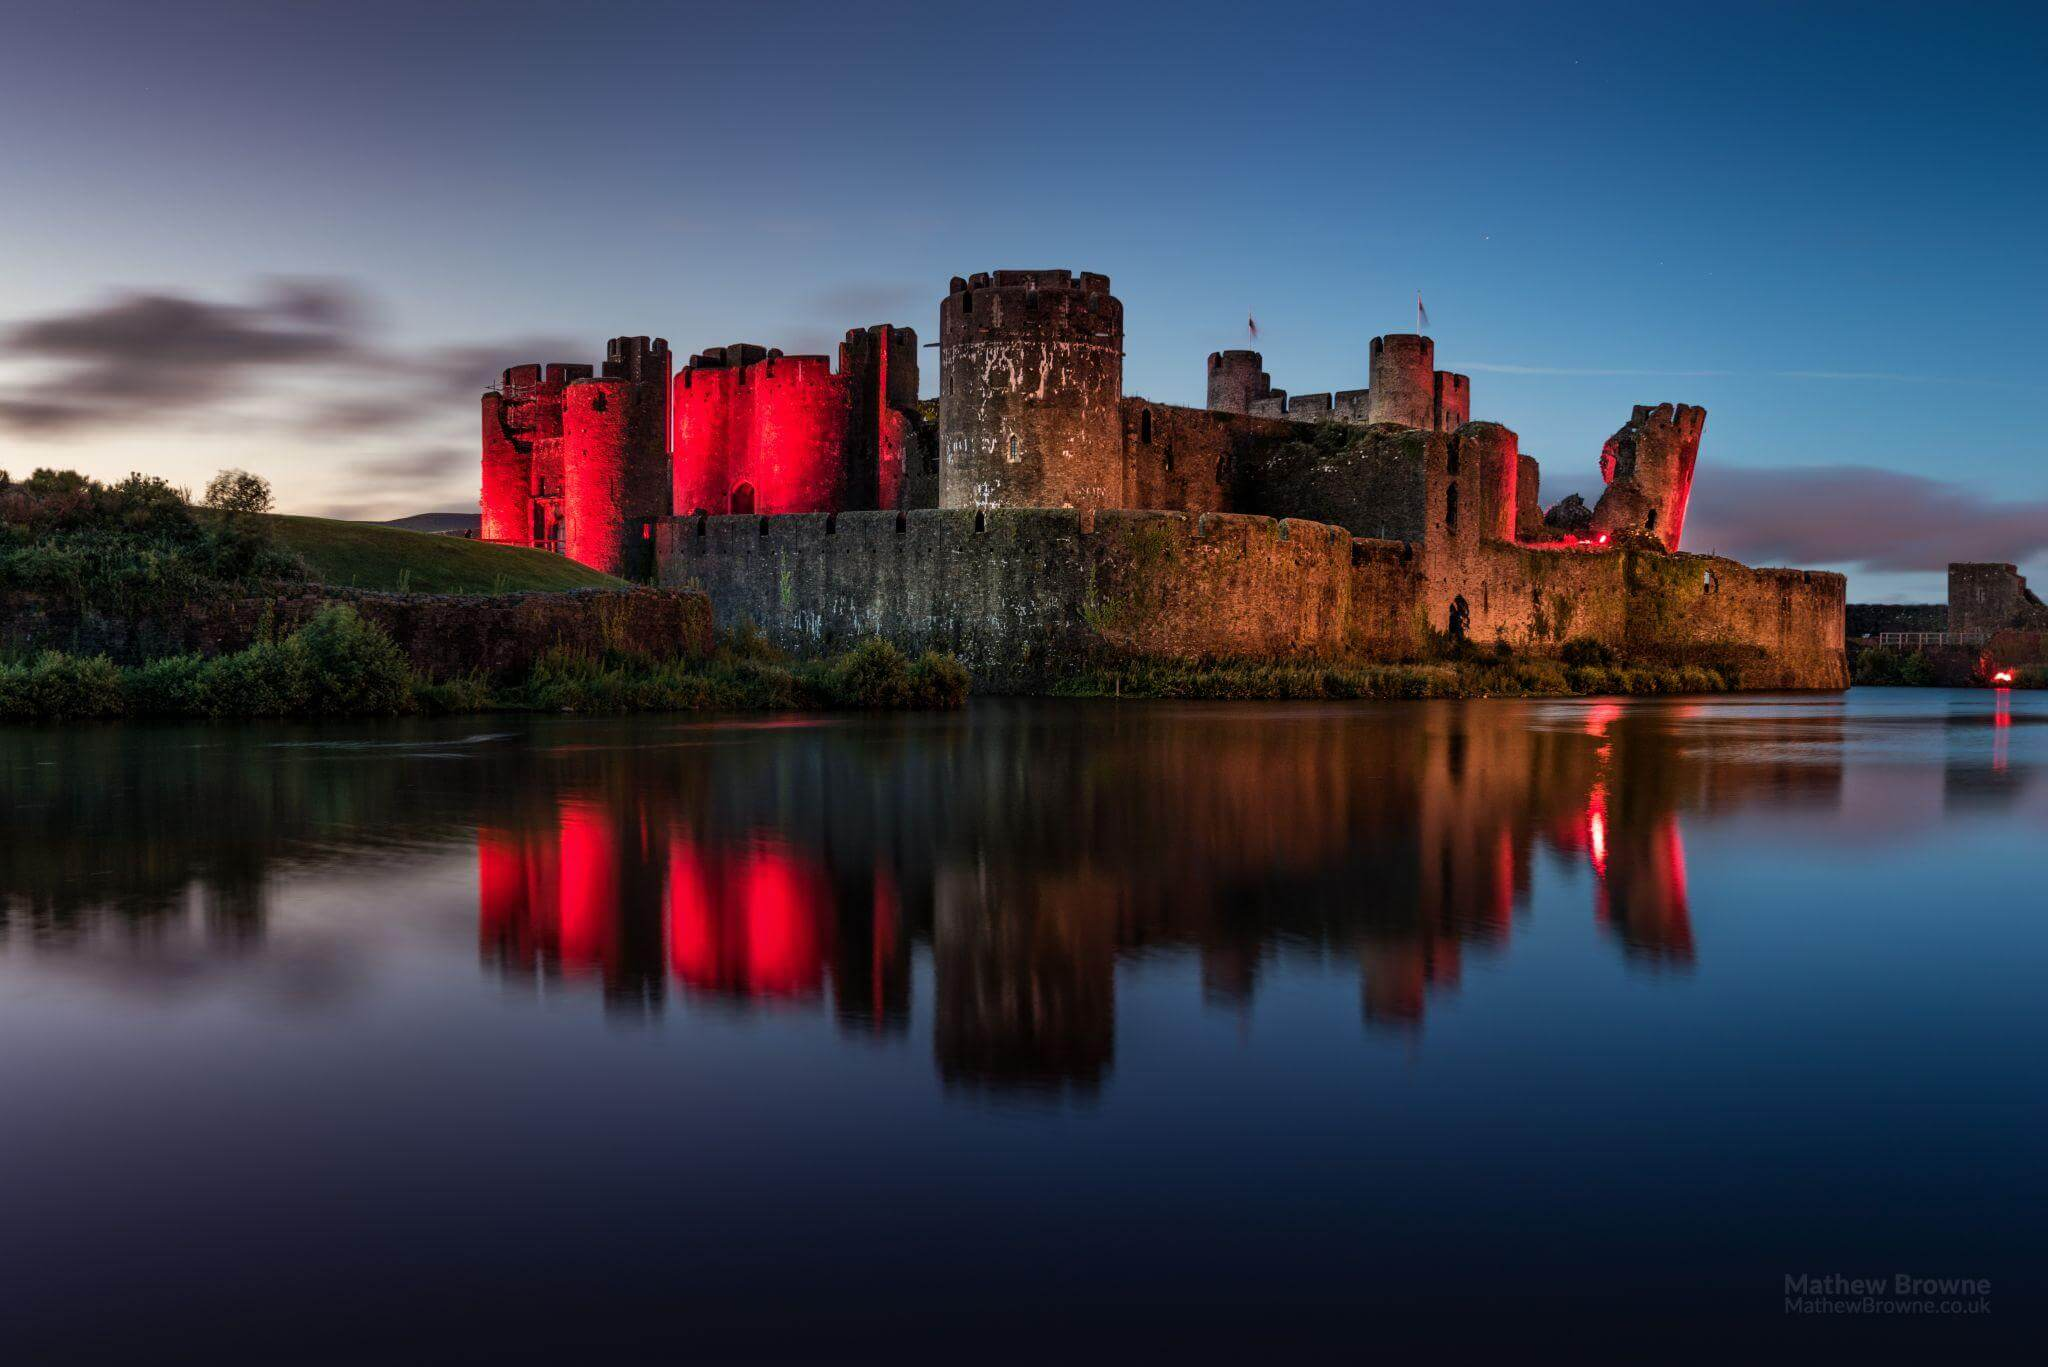 South Wales photography spots - Caerphilly Castle